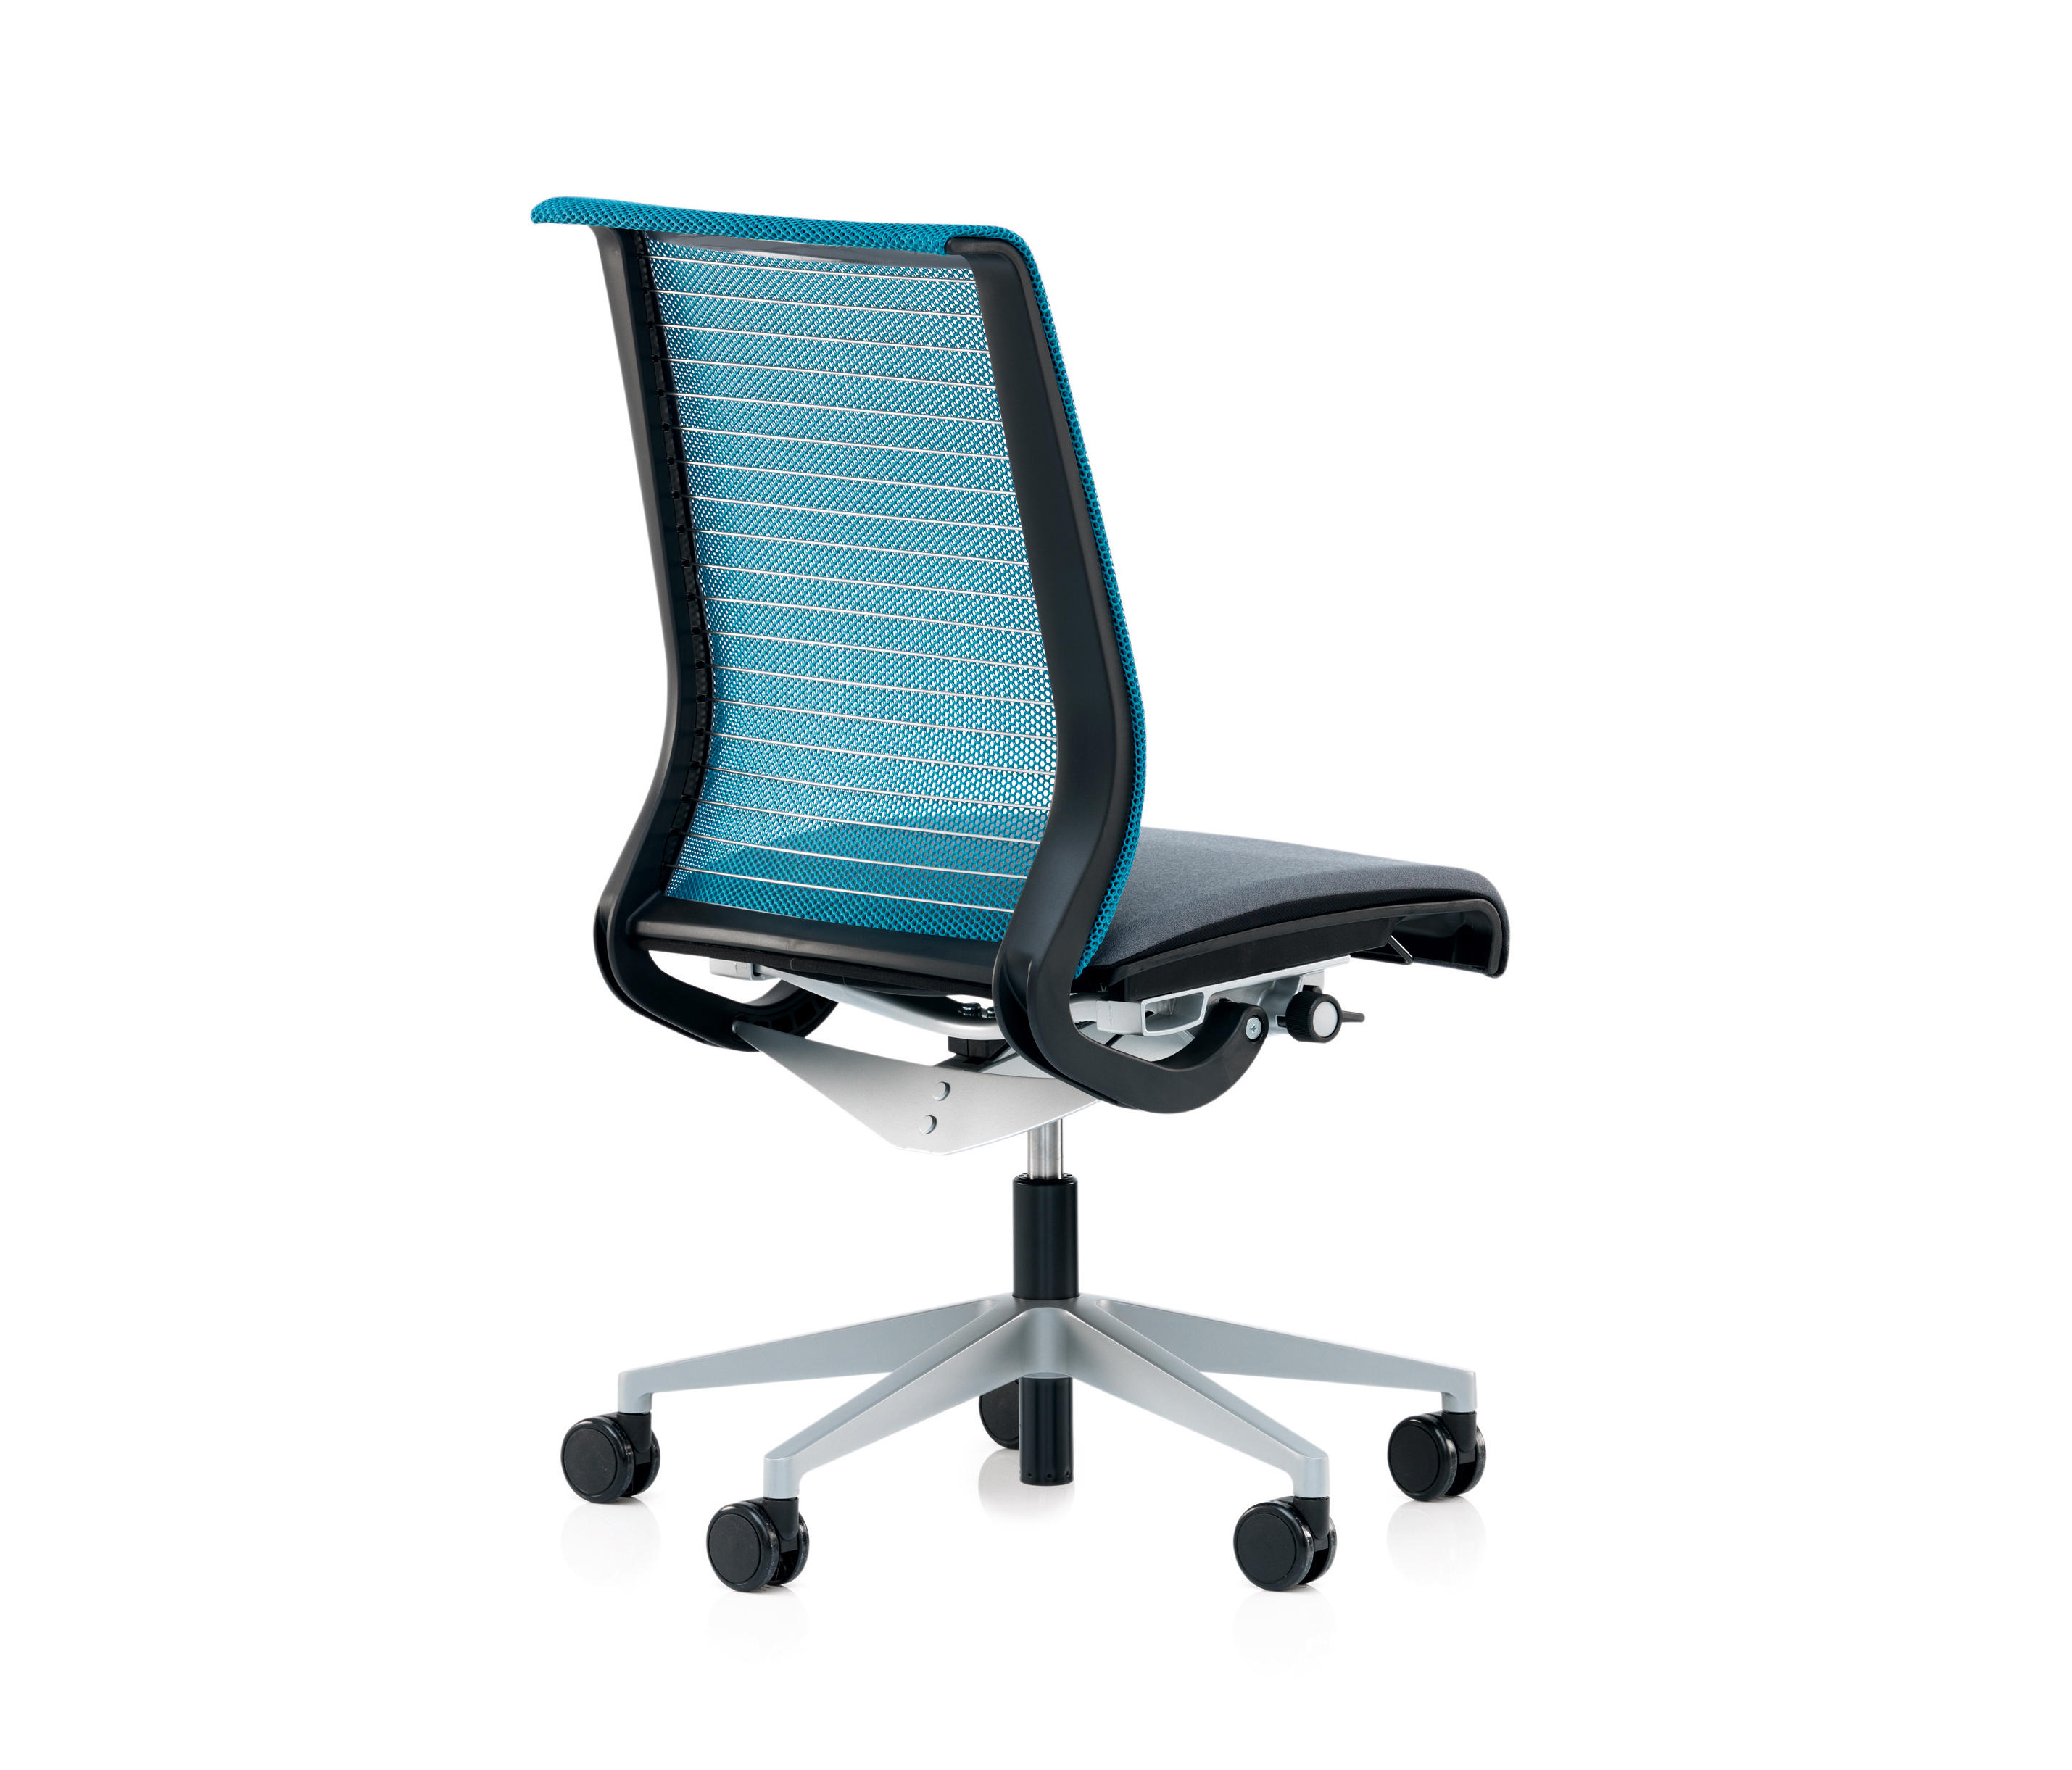 THINK Task chairs from Steelcase